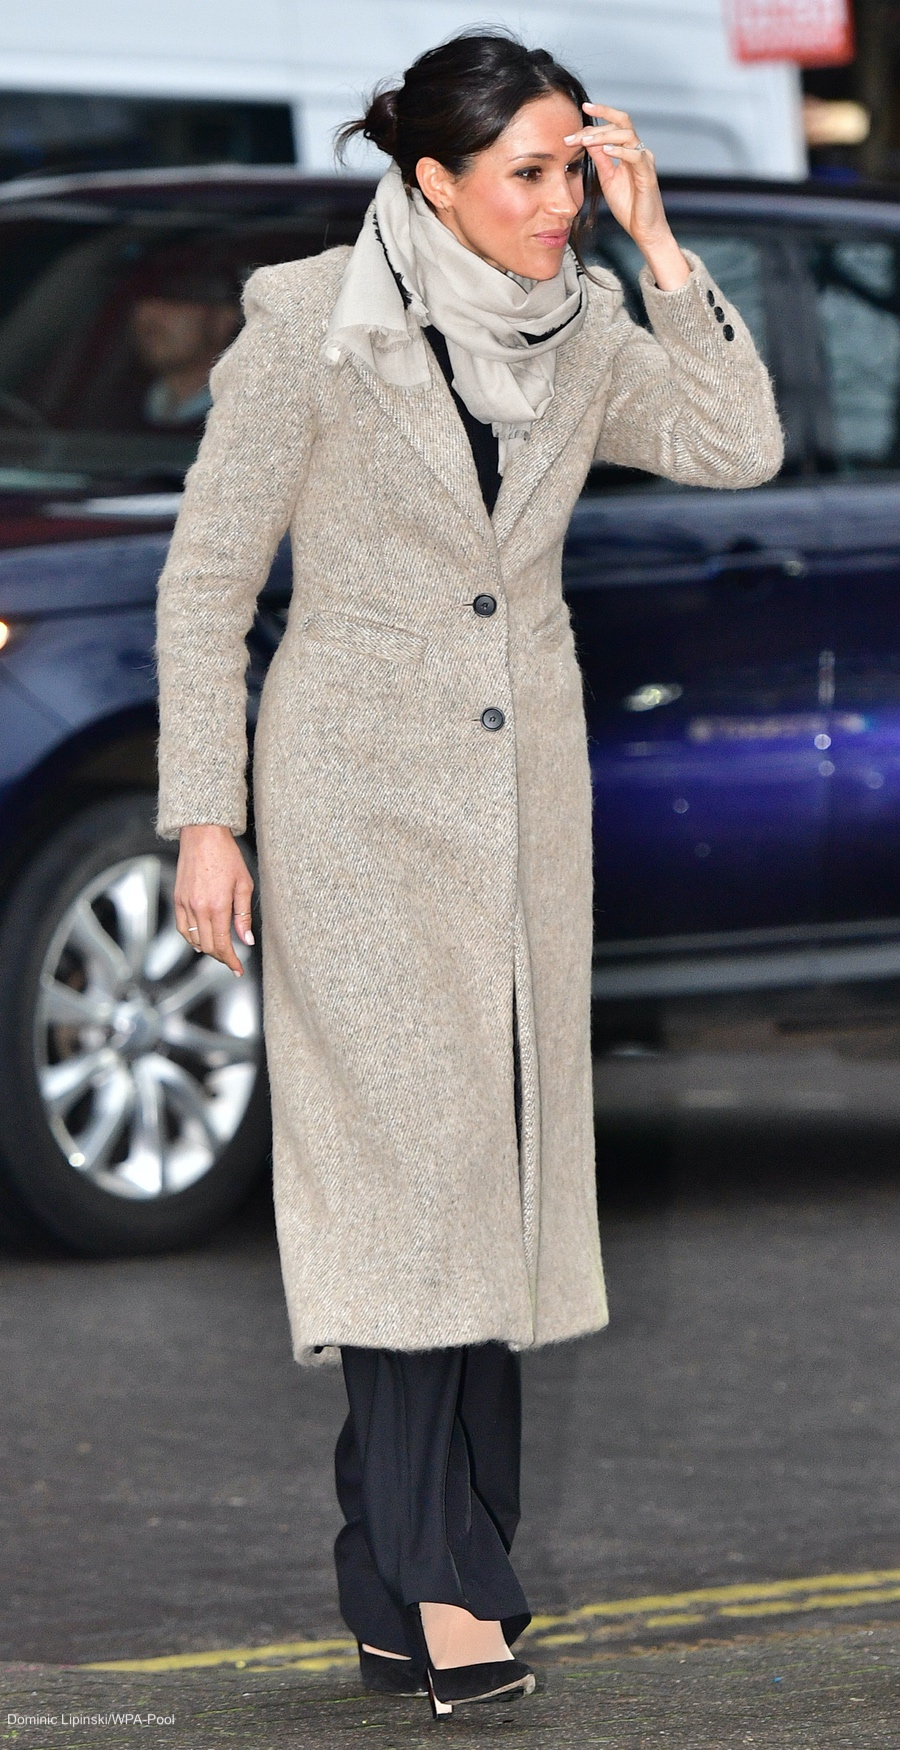 Meghan Markle wearing the Smythe Brando coat in Brixton